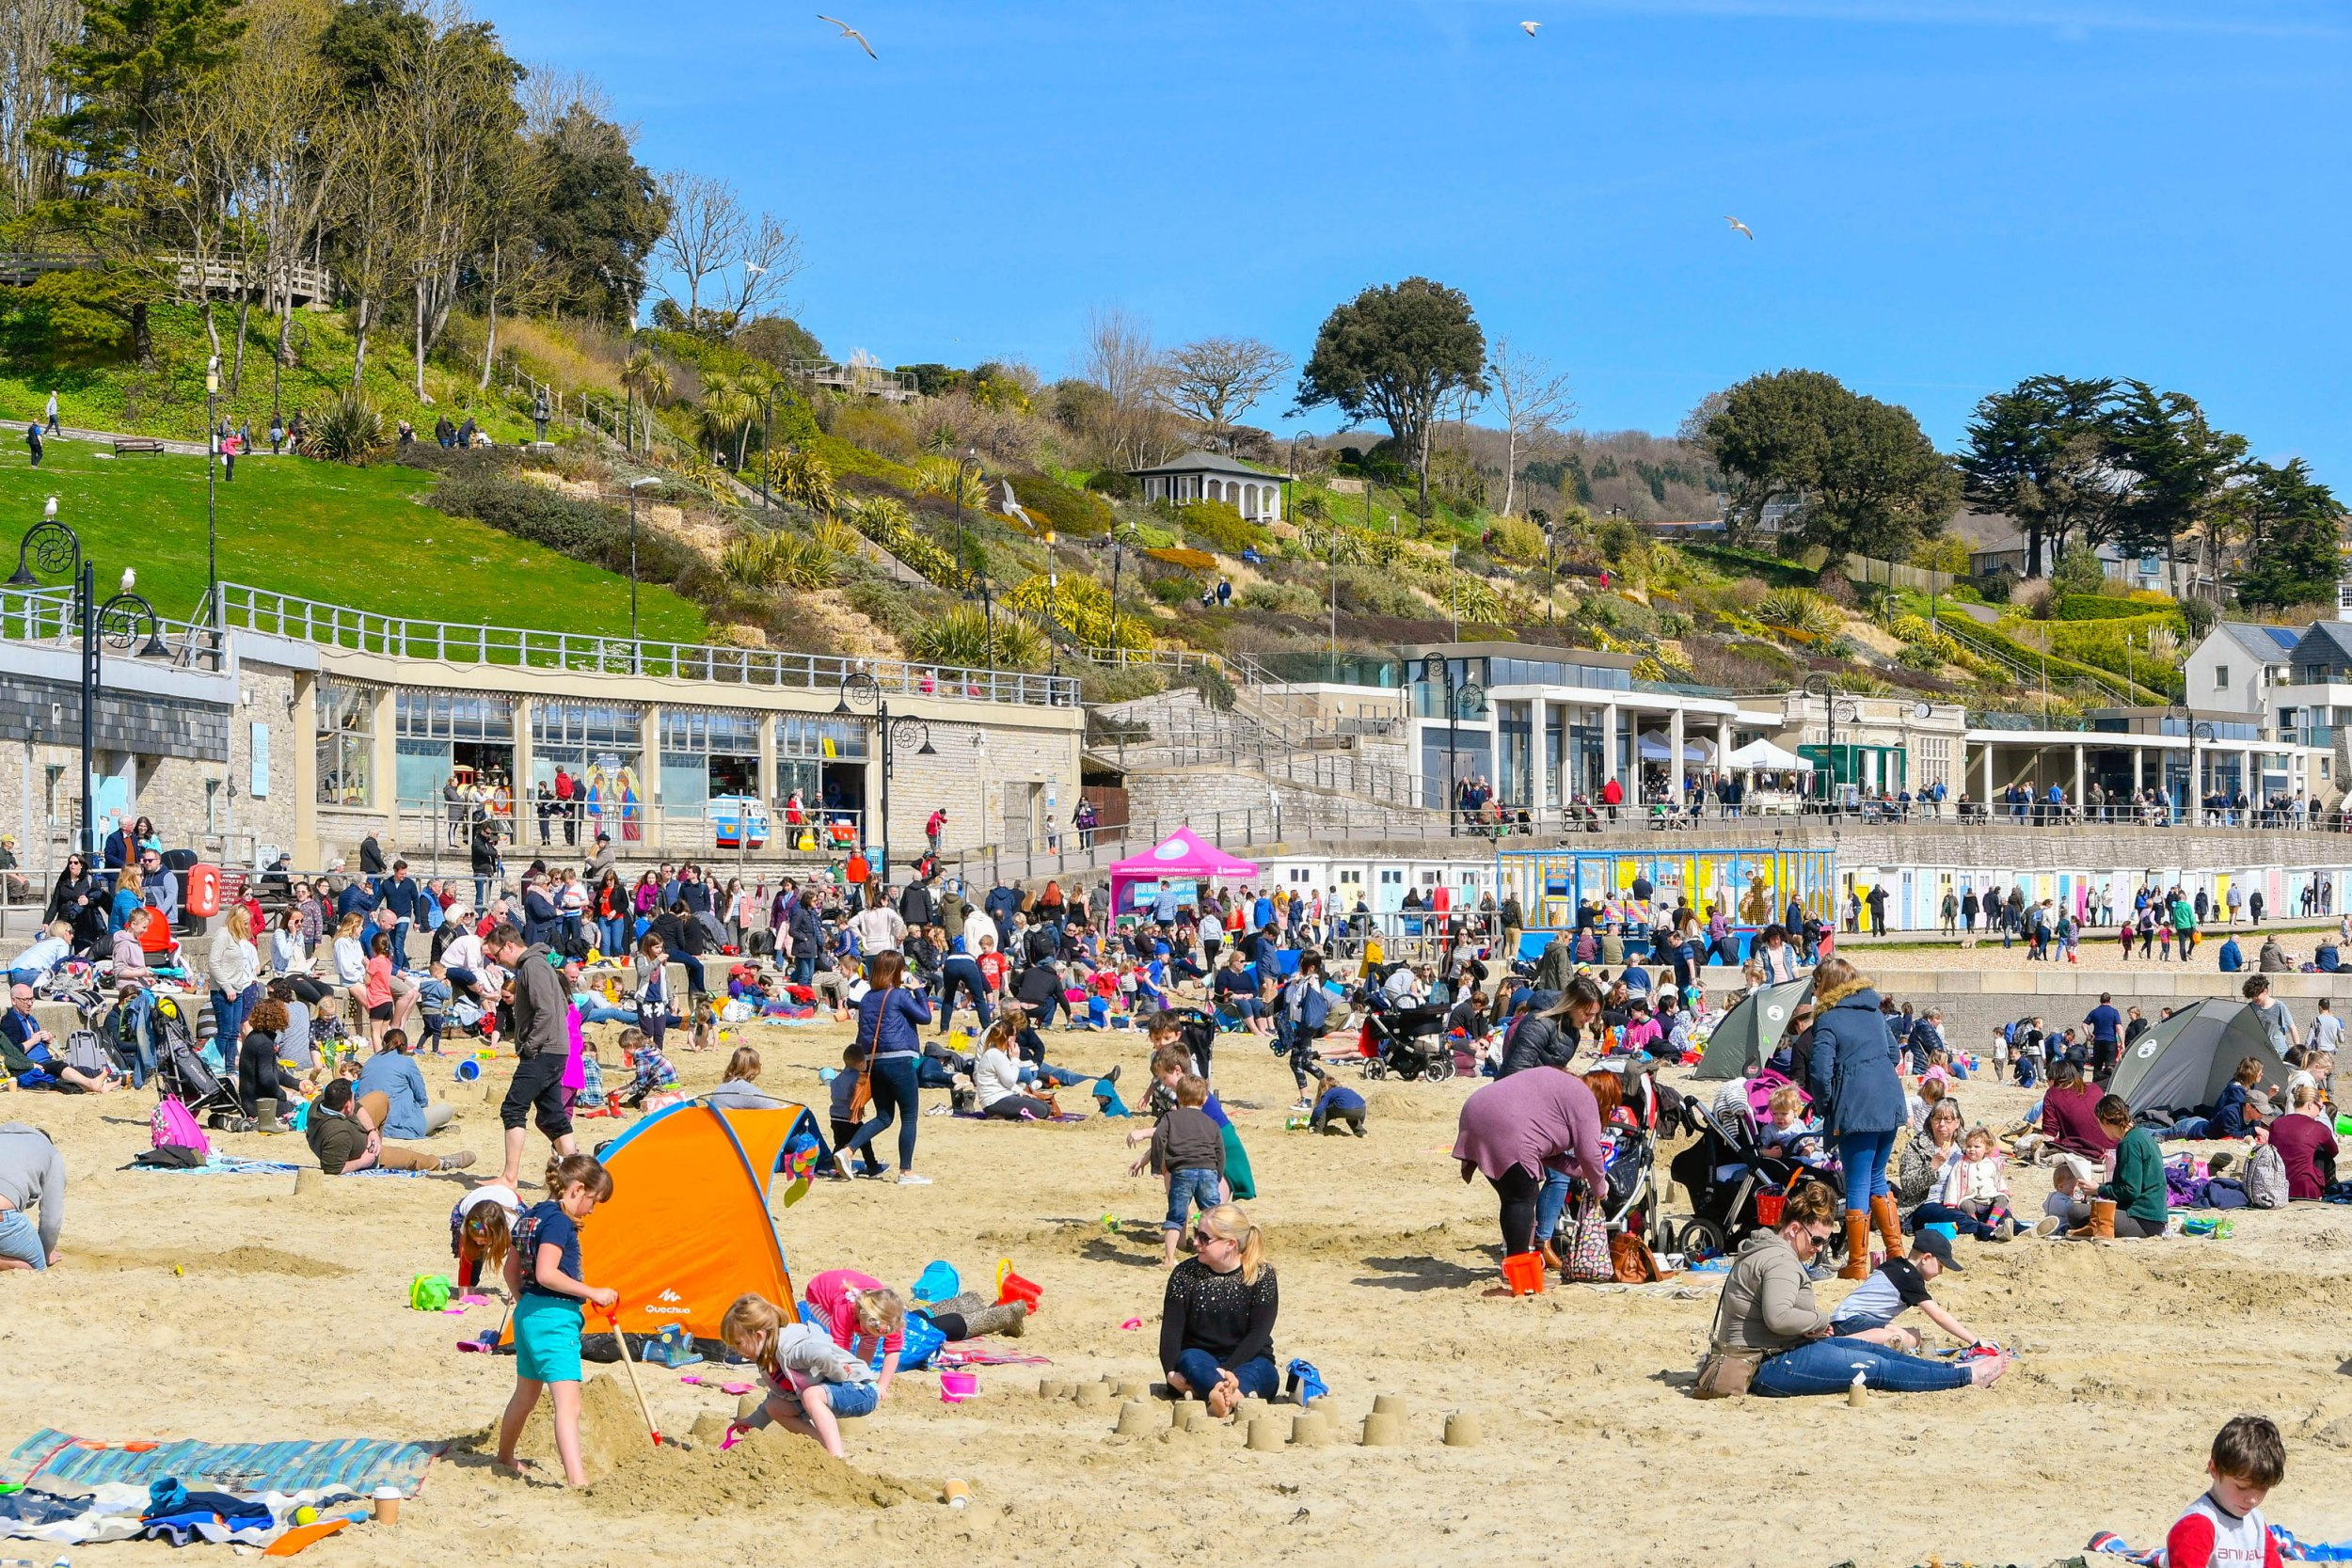 Alamy Live News. MAY3D6 Lyme Regis, Dorset, UK. 5th April 2018. UK Weather. Holidaymakers and visitors flock to the beach to enjoy the warm spring sunshine and blue skies at the seaside resort of Lyme Regis in Dorset during the Easter school holidays. Picture Credit: Graham Hunt/Alamy Live News This is an Alamy Live News image and may not be part of your current Alamy deal . If you are unsure, please contact our sales team to check.